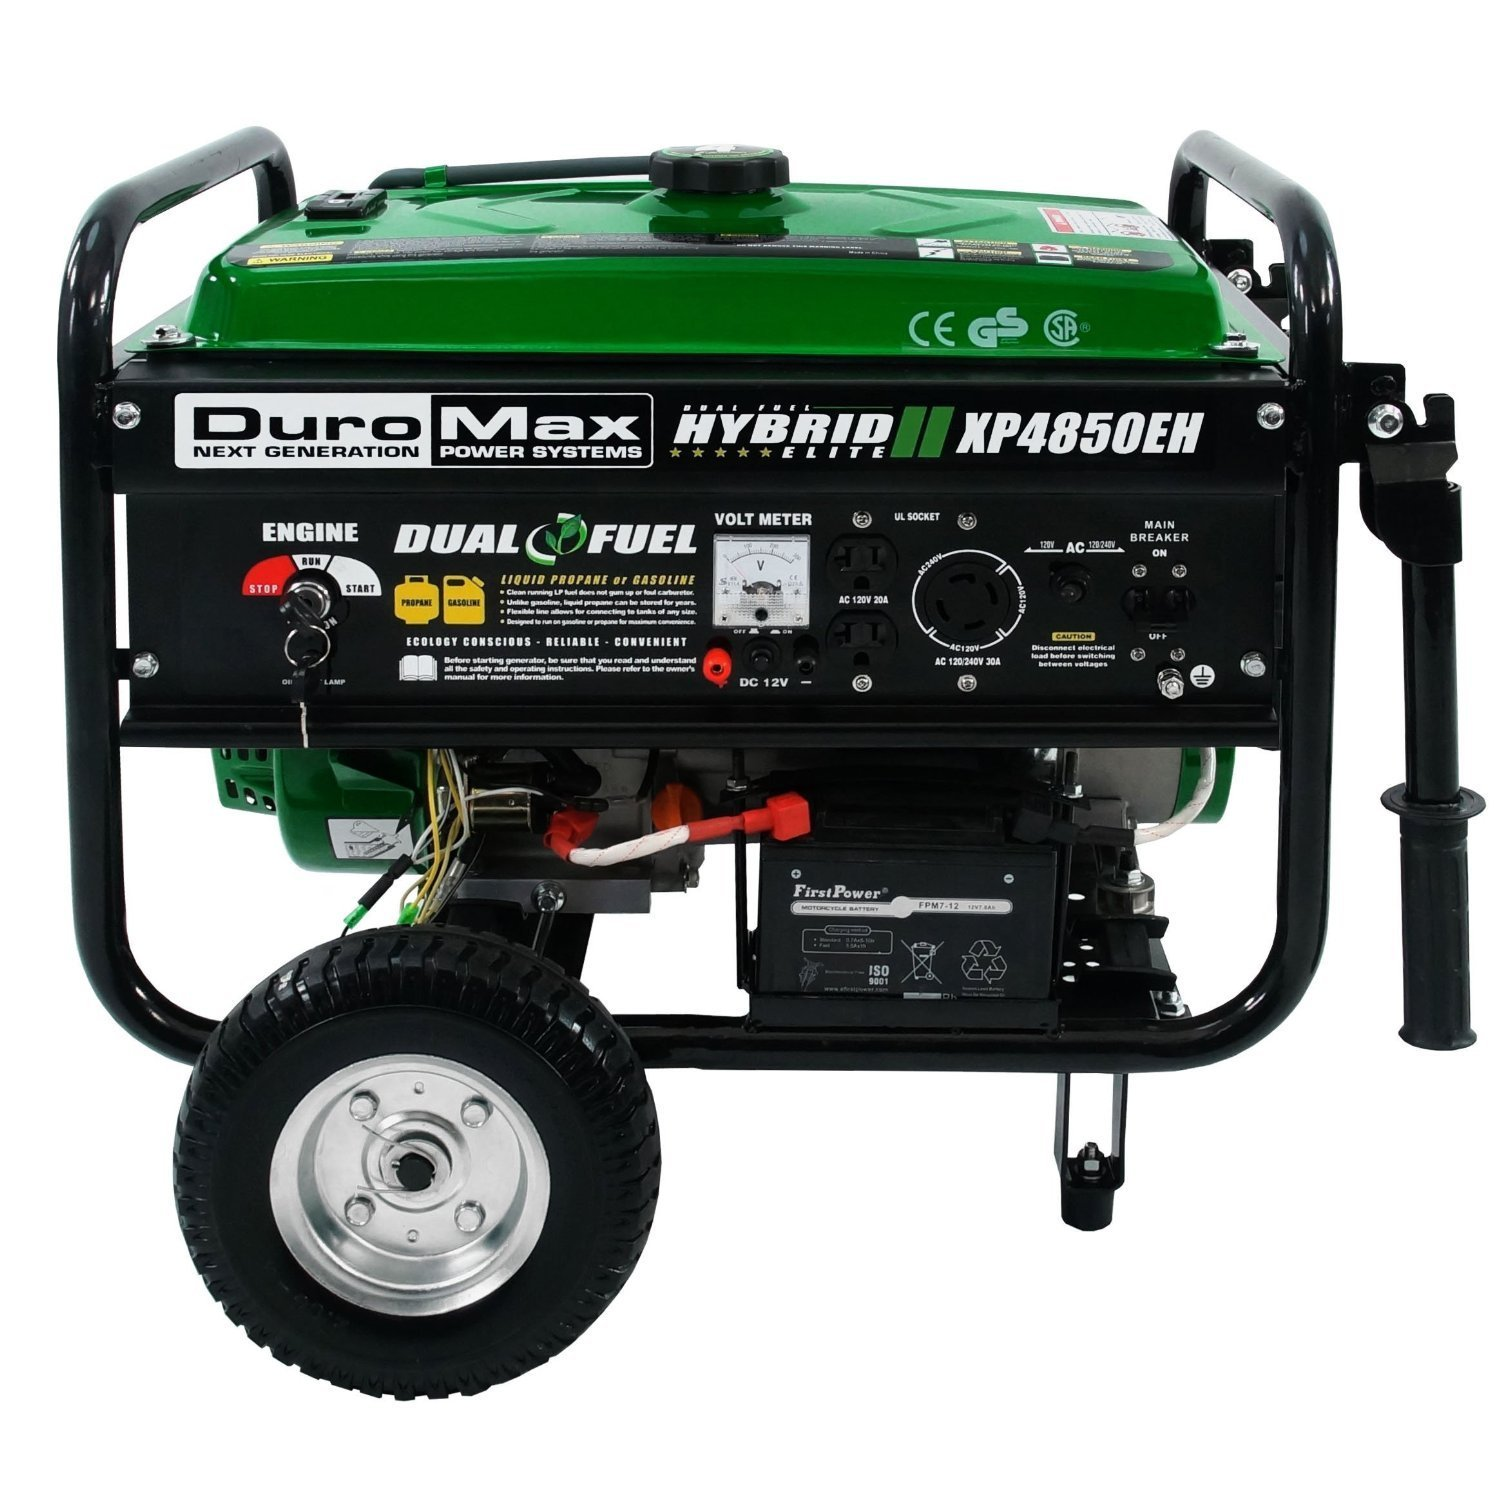 DuroMax XP4850EH Generator-4850 Watt Gas Or Propane Powered-Electric Start-Camping & RV Ready, 50 State Approved Dual…